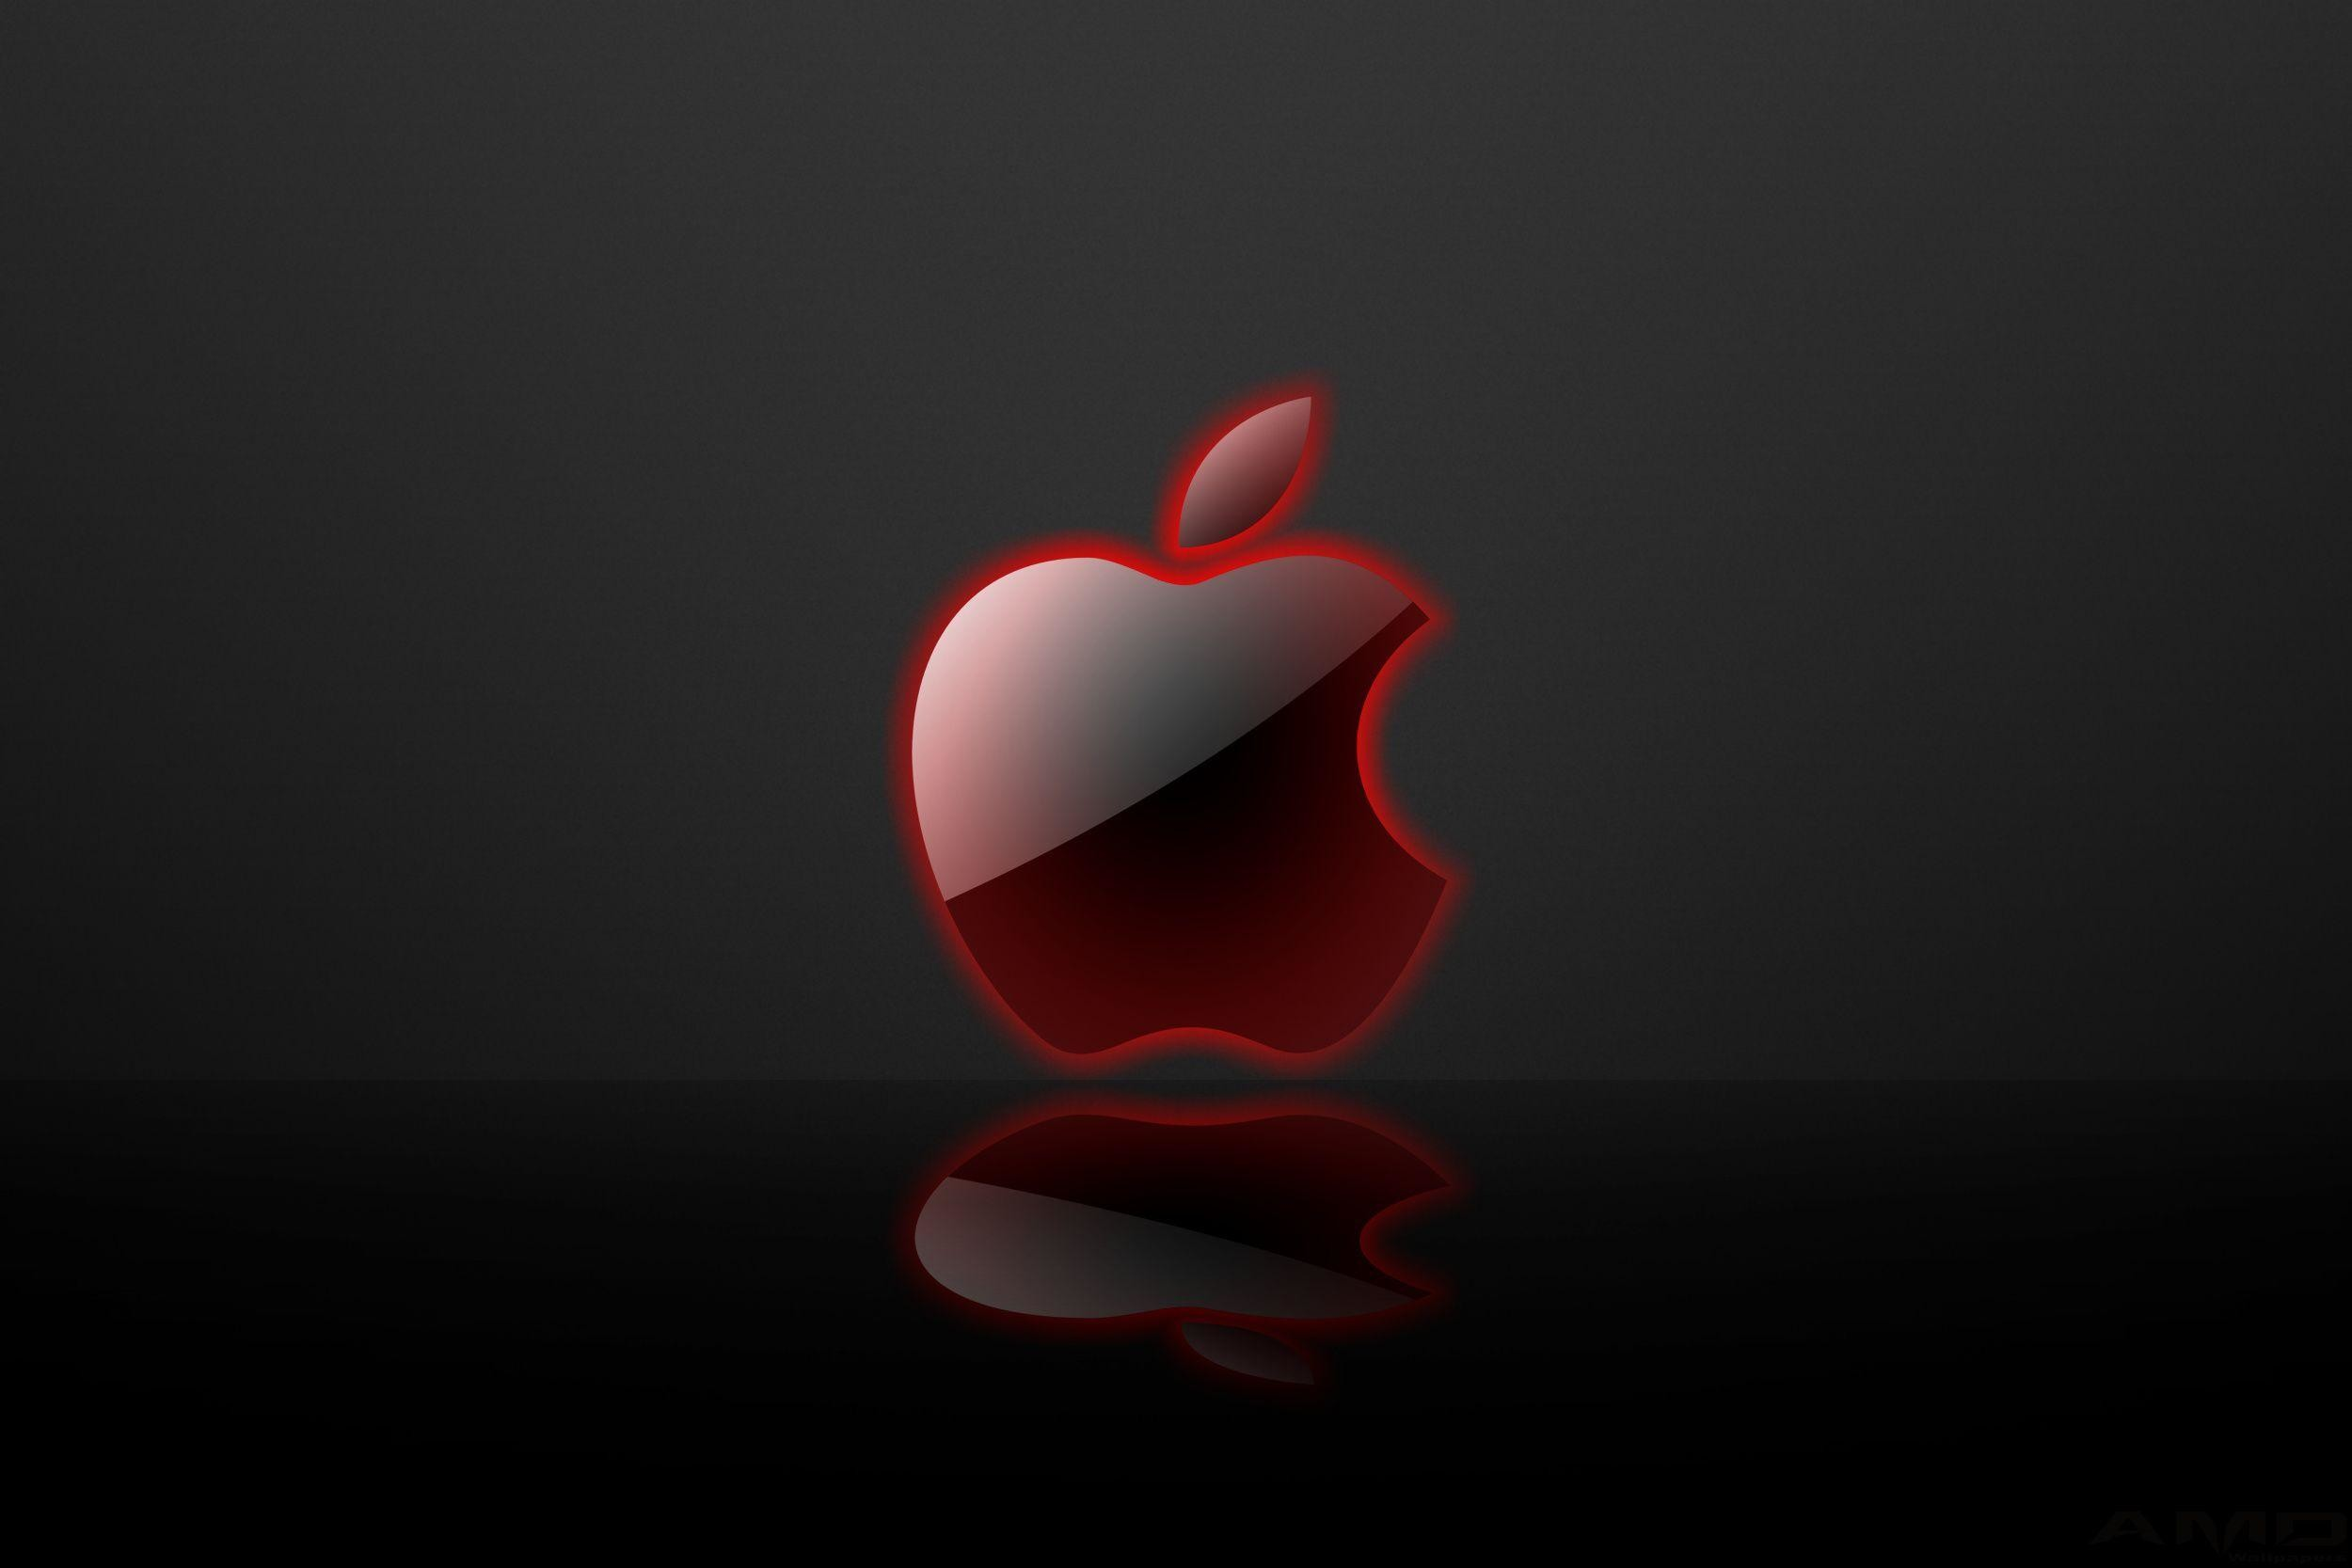 red apple logo wallpaper (64+ images)